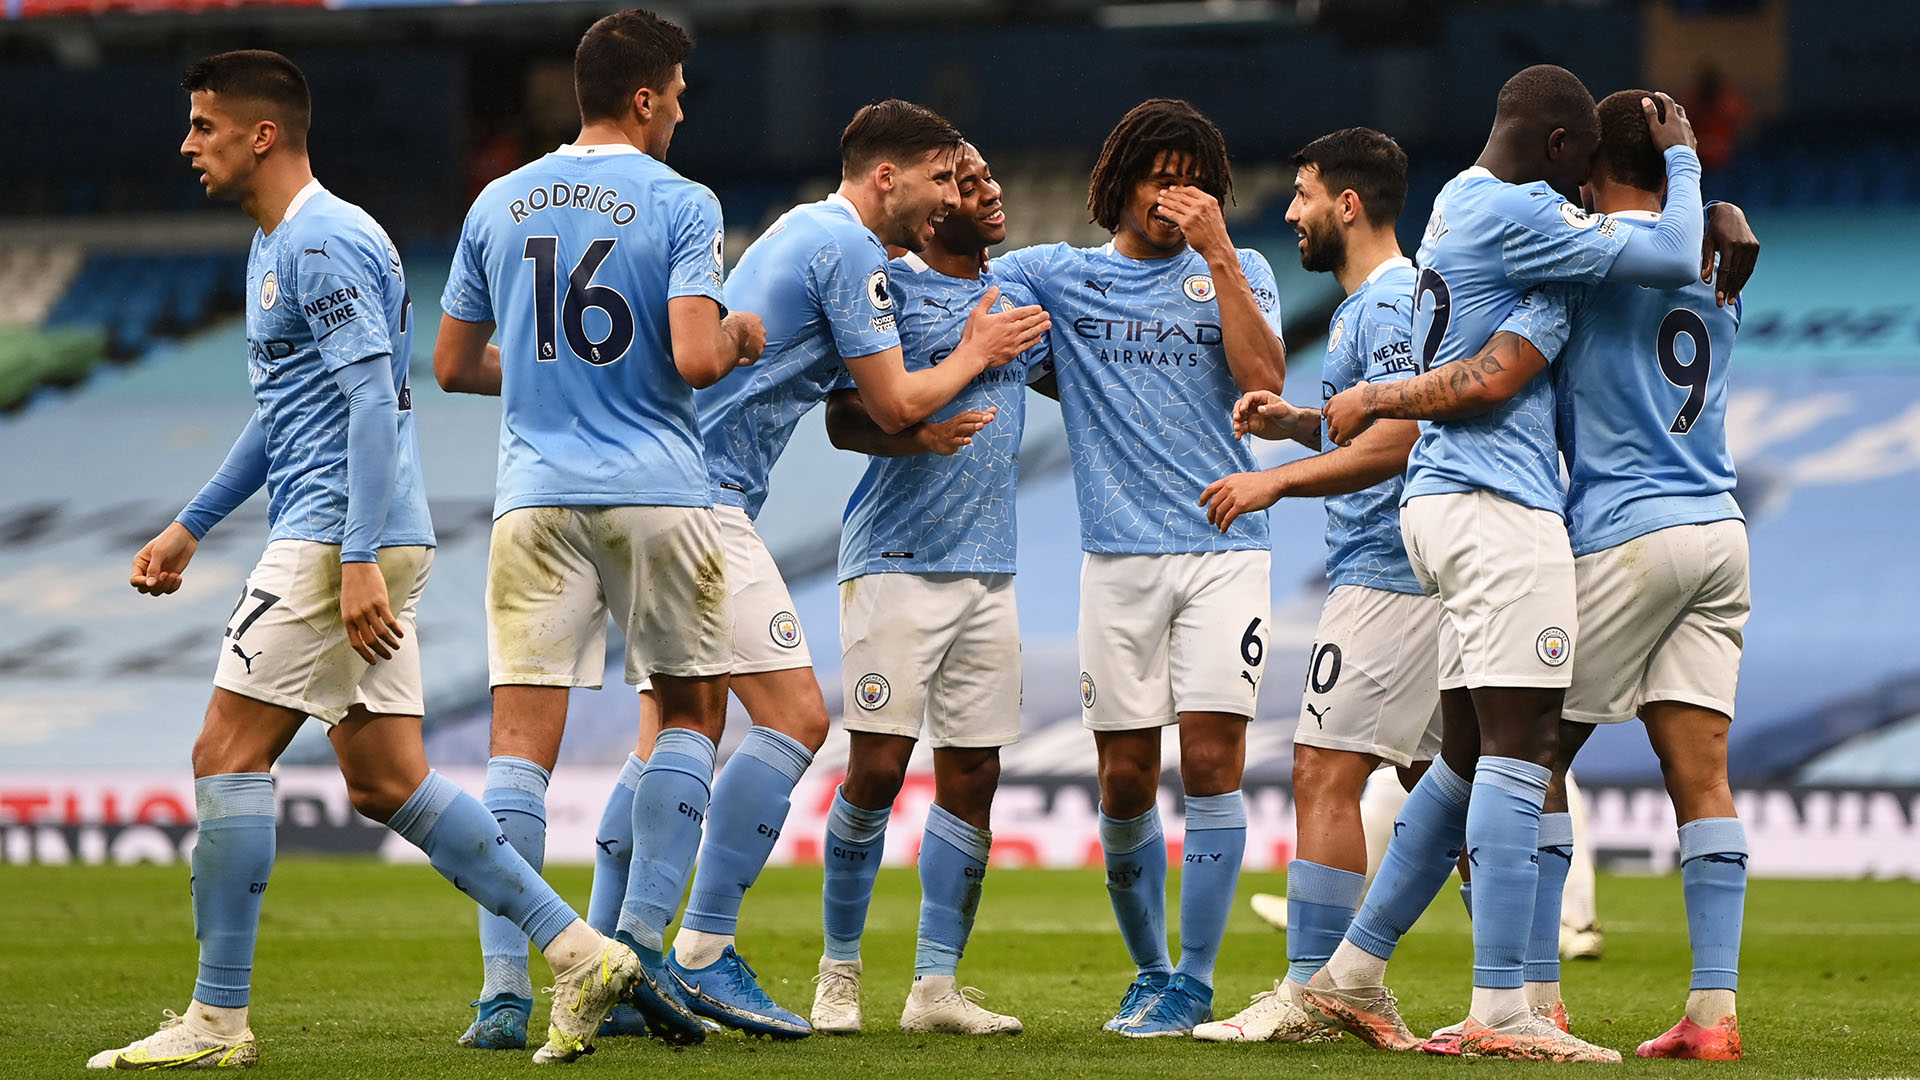 Man City were Premier League champions after Leicester defeated Manchester United